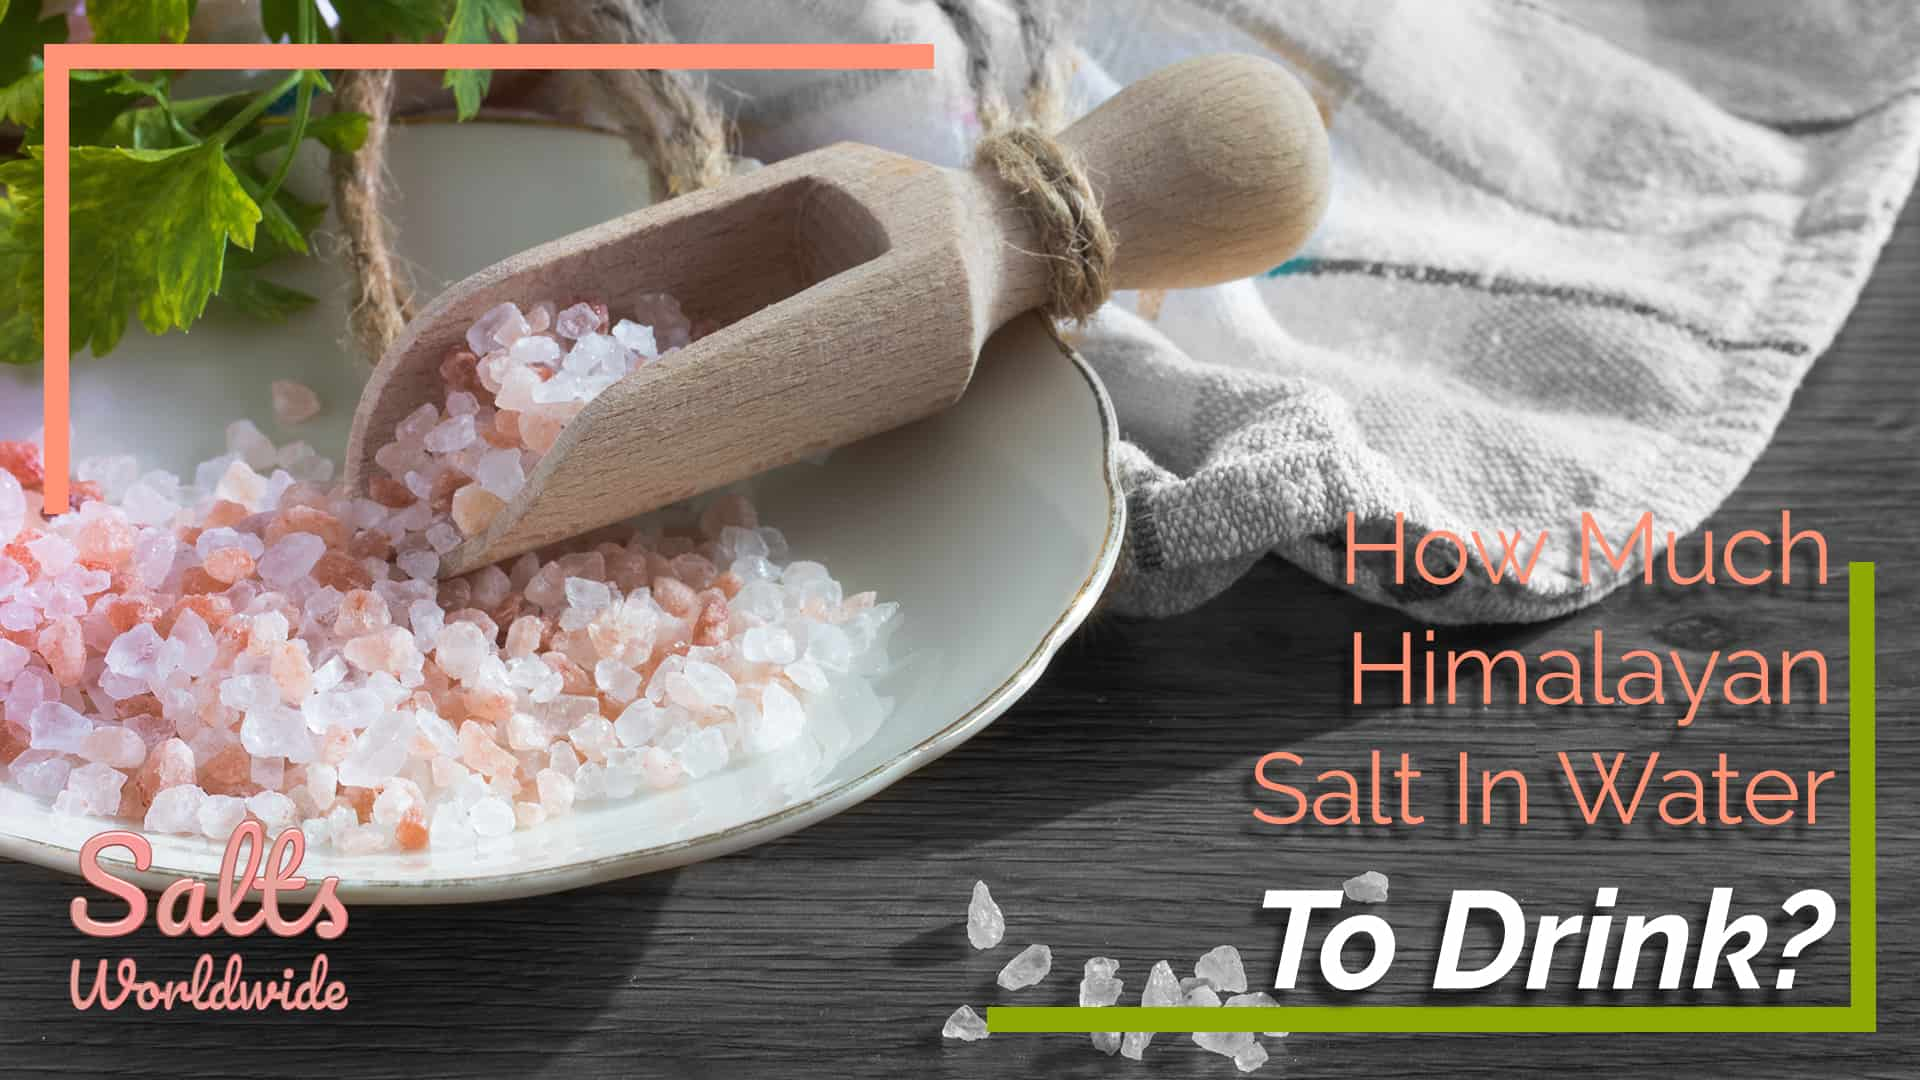 How Much Himalayan Salt In Water To Drink - featured image